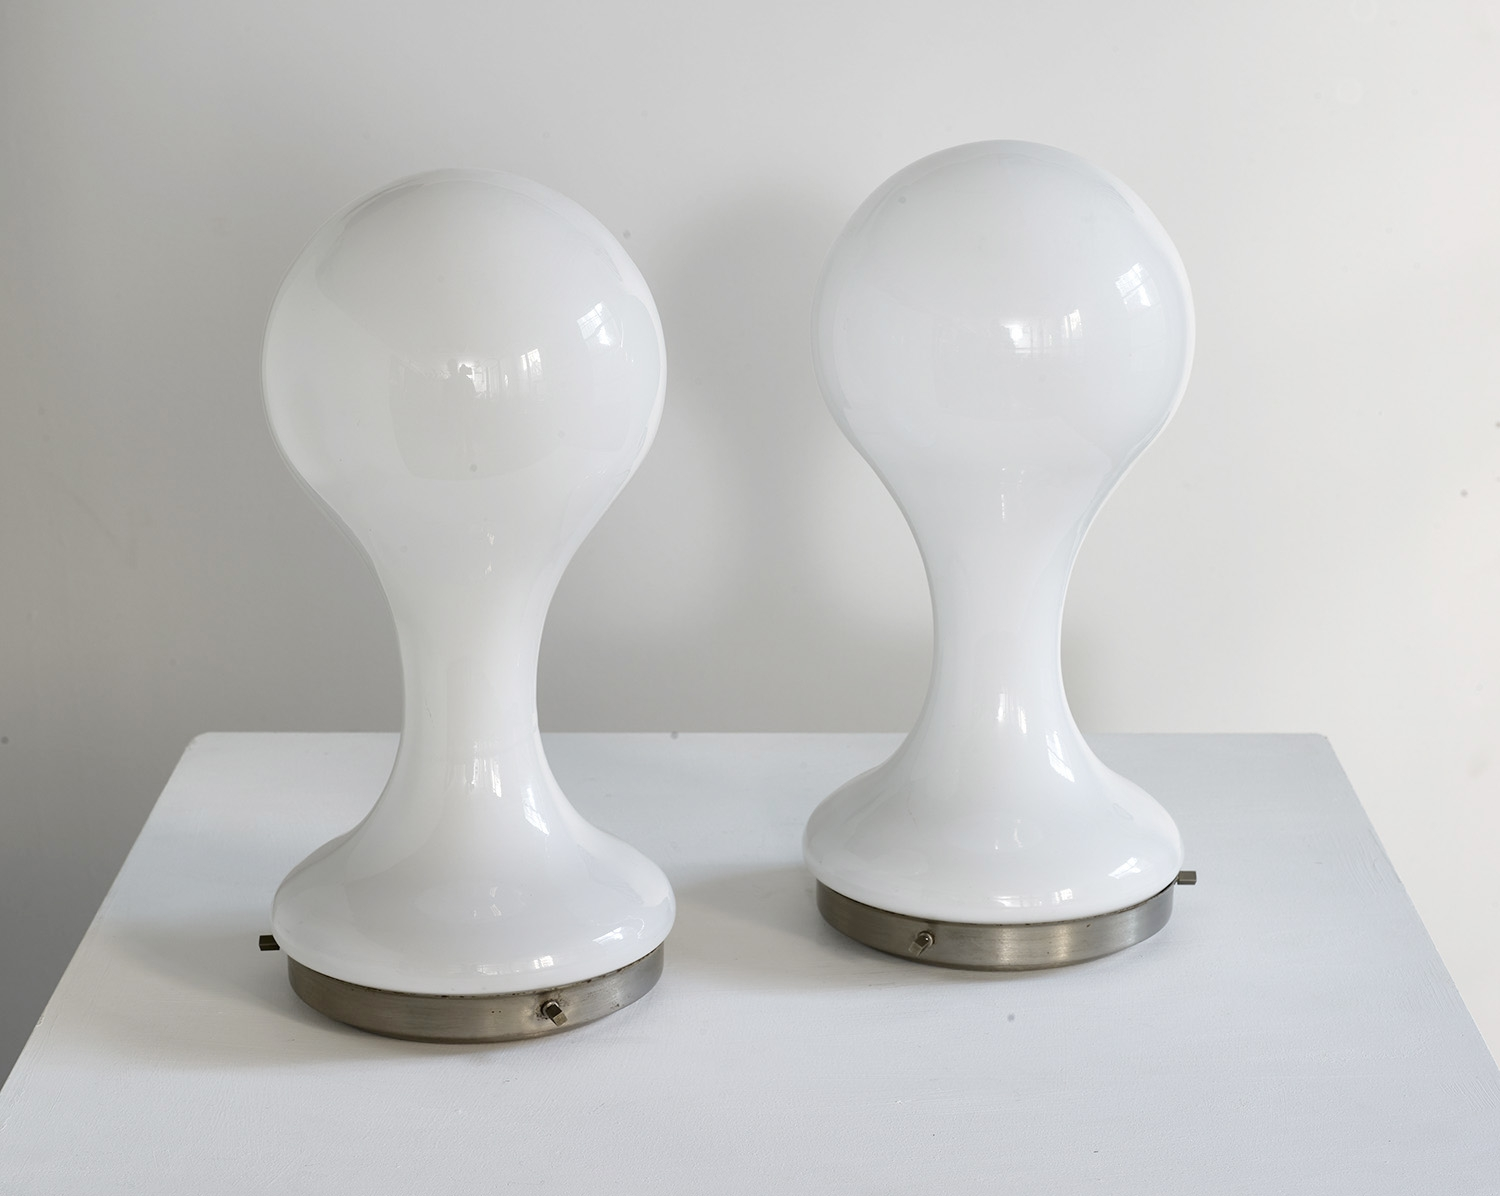 pair-of-table-lamps-by-mazzega-1960-image-02